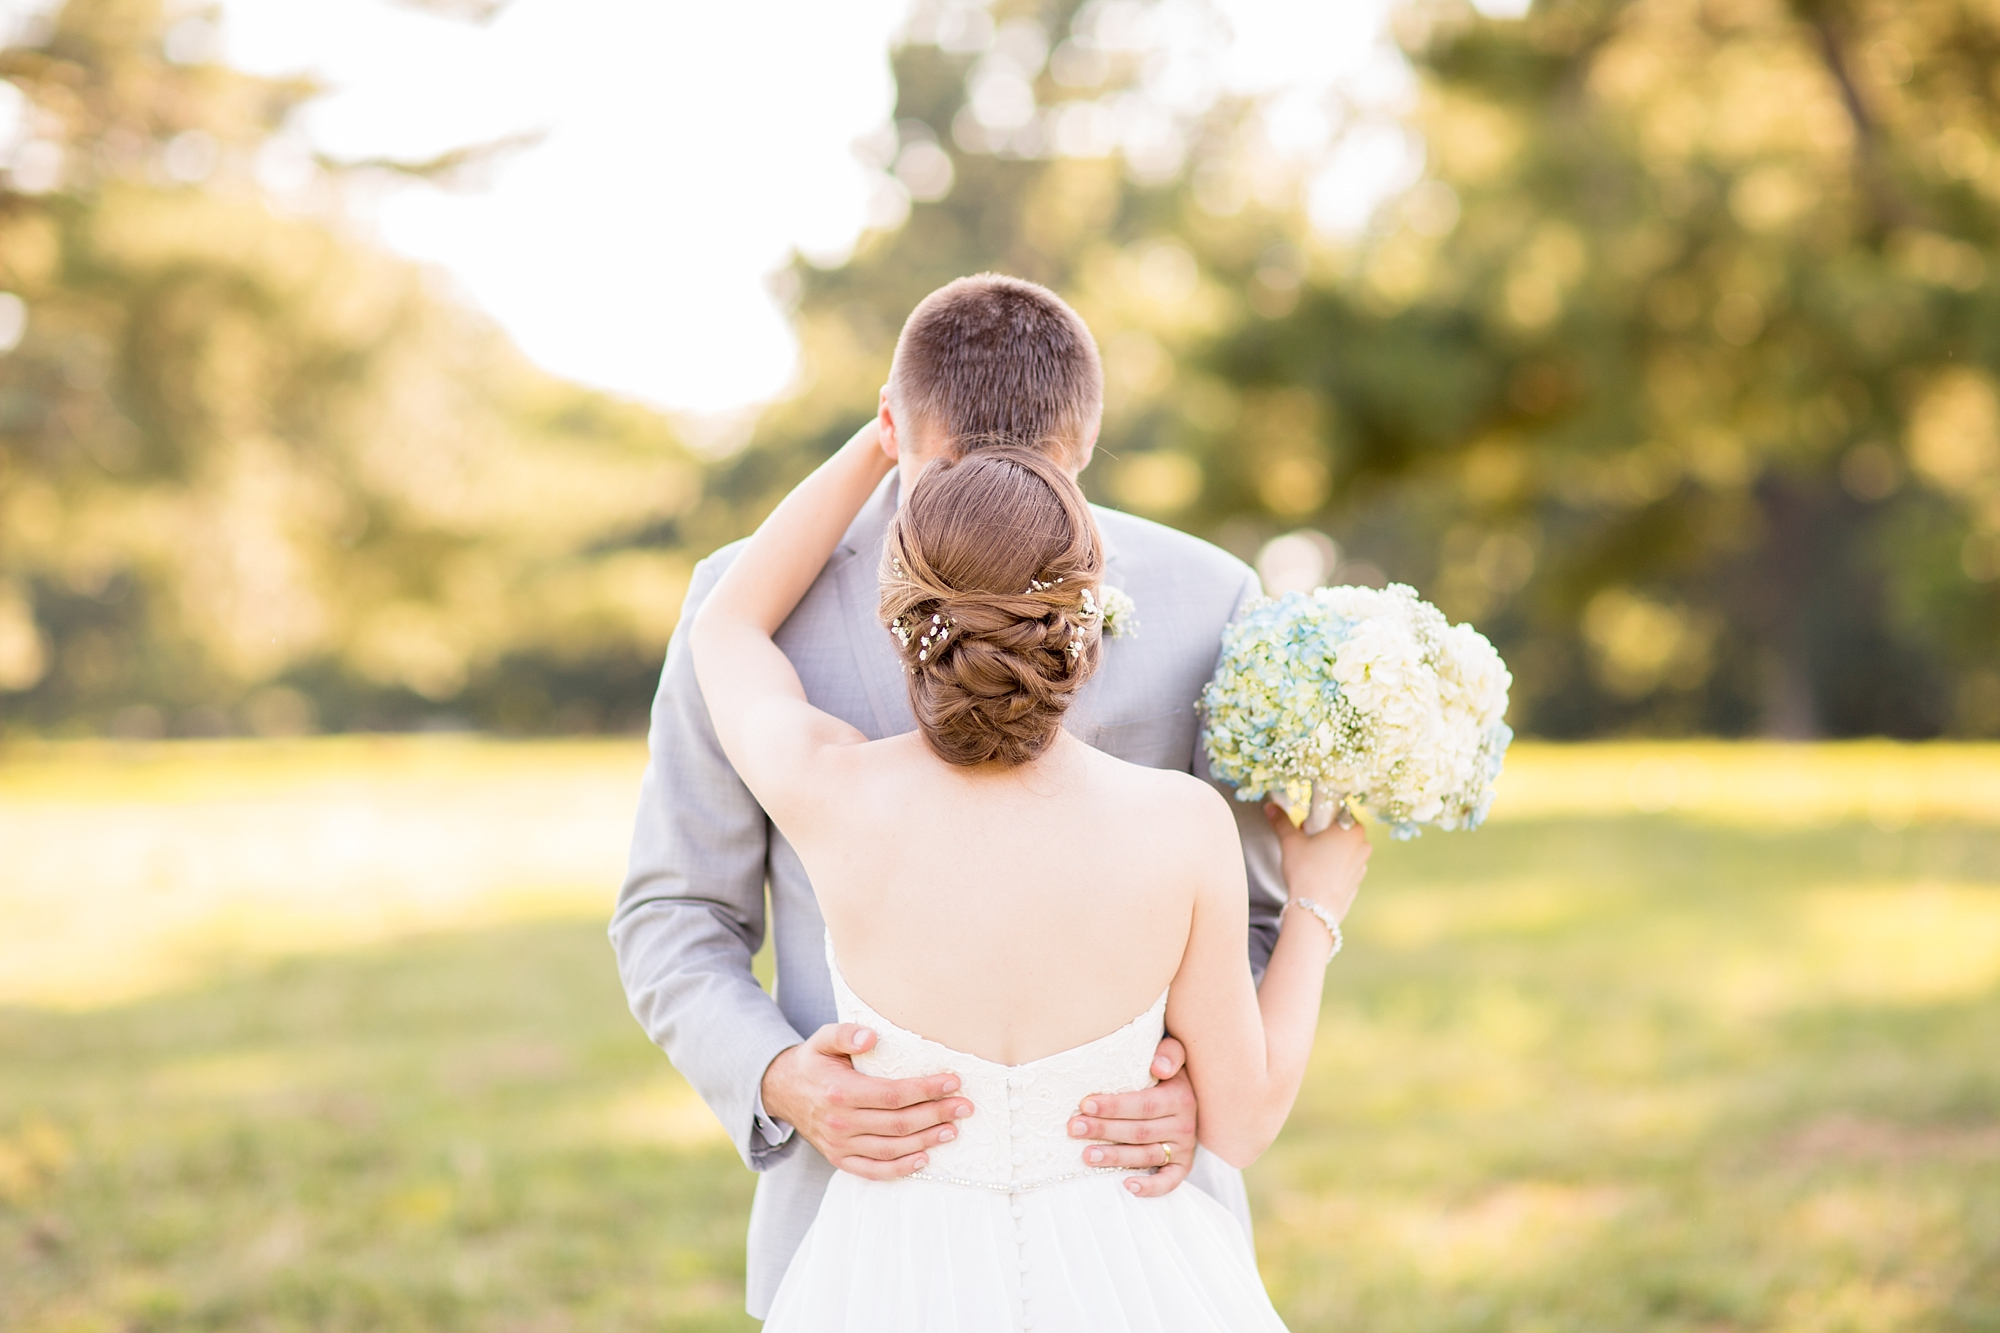 Mroz 5-Bride & Groom Portraits-670_anna grace photography top of the bay maryland wedding photographer photo.jpg